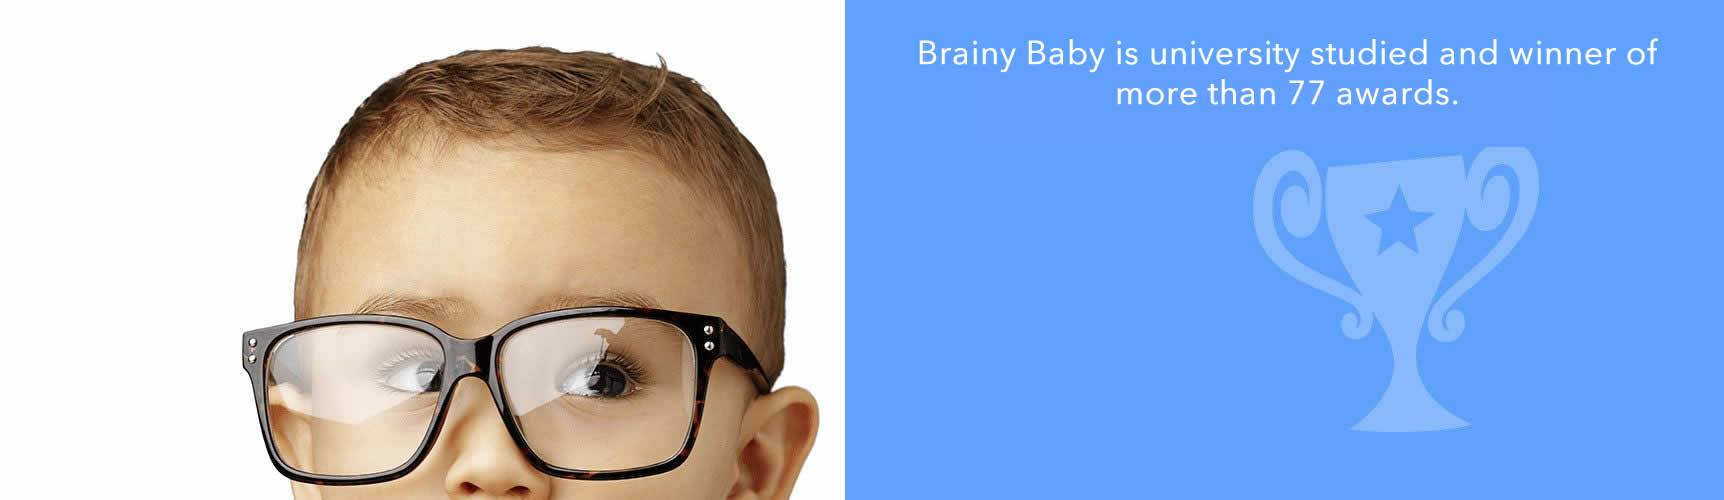 Brainy Baby is university studied and winner of 77 awards